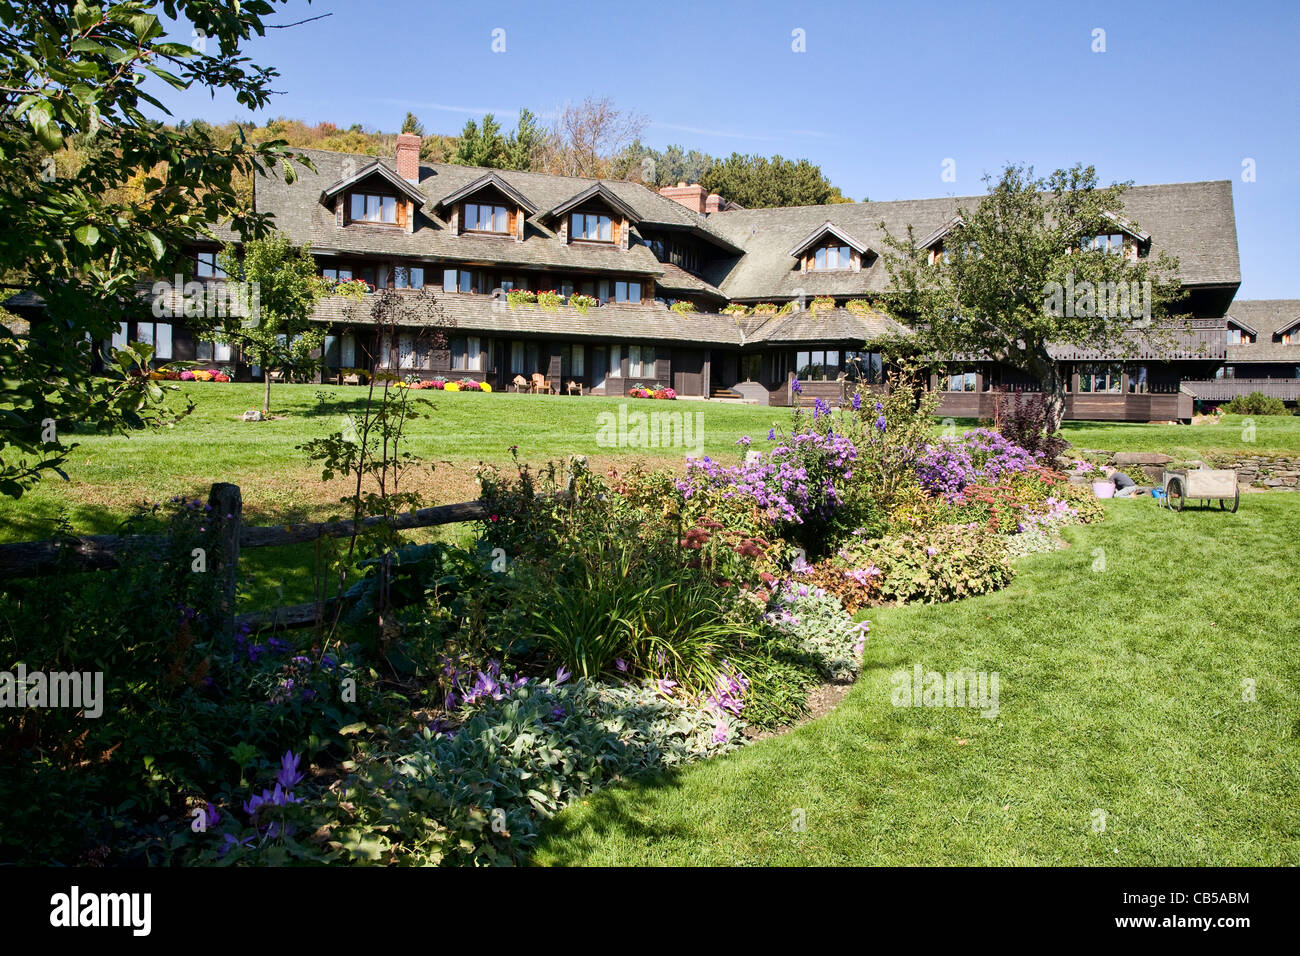 The Trapp Family Lodge in Vermont. - Stock Image